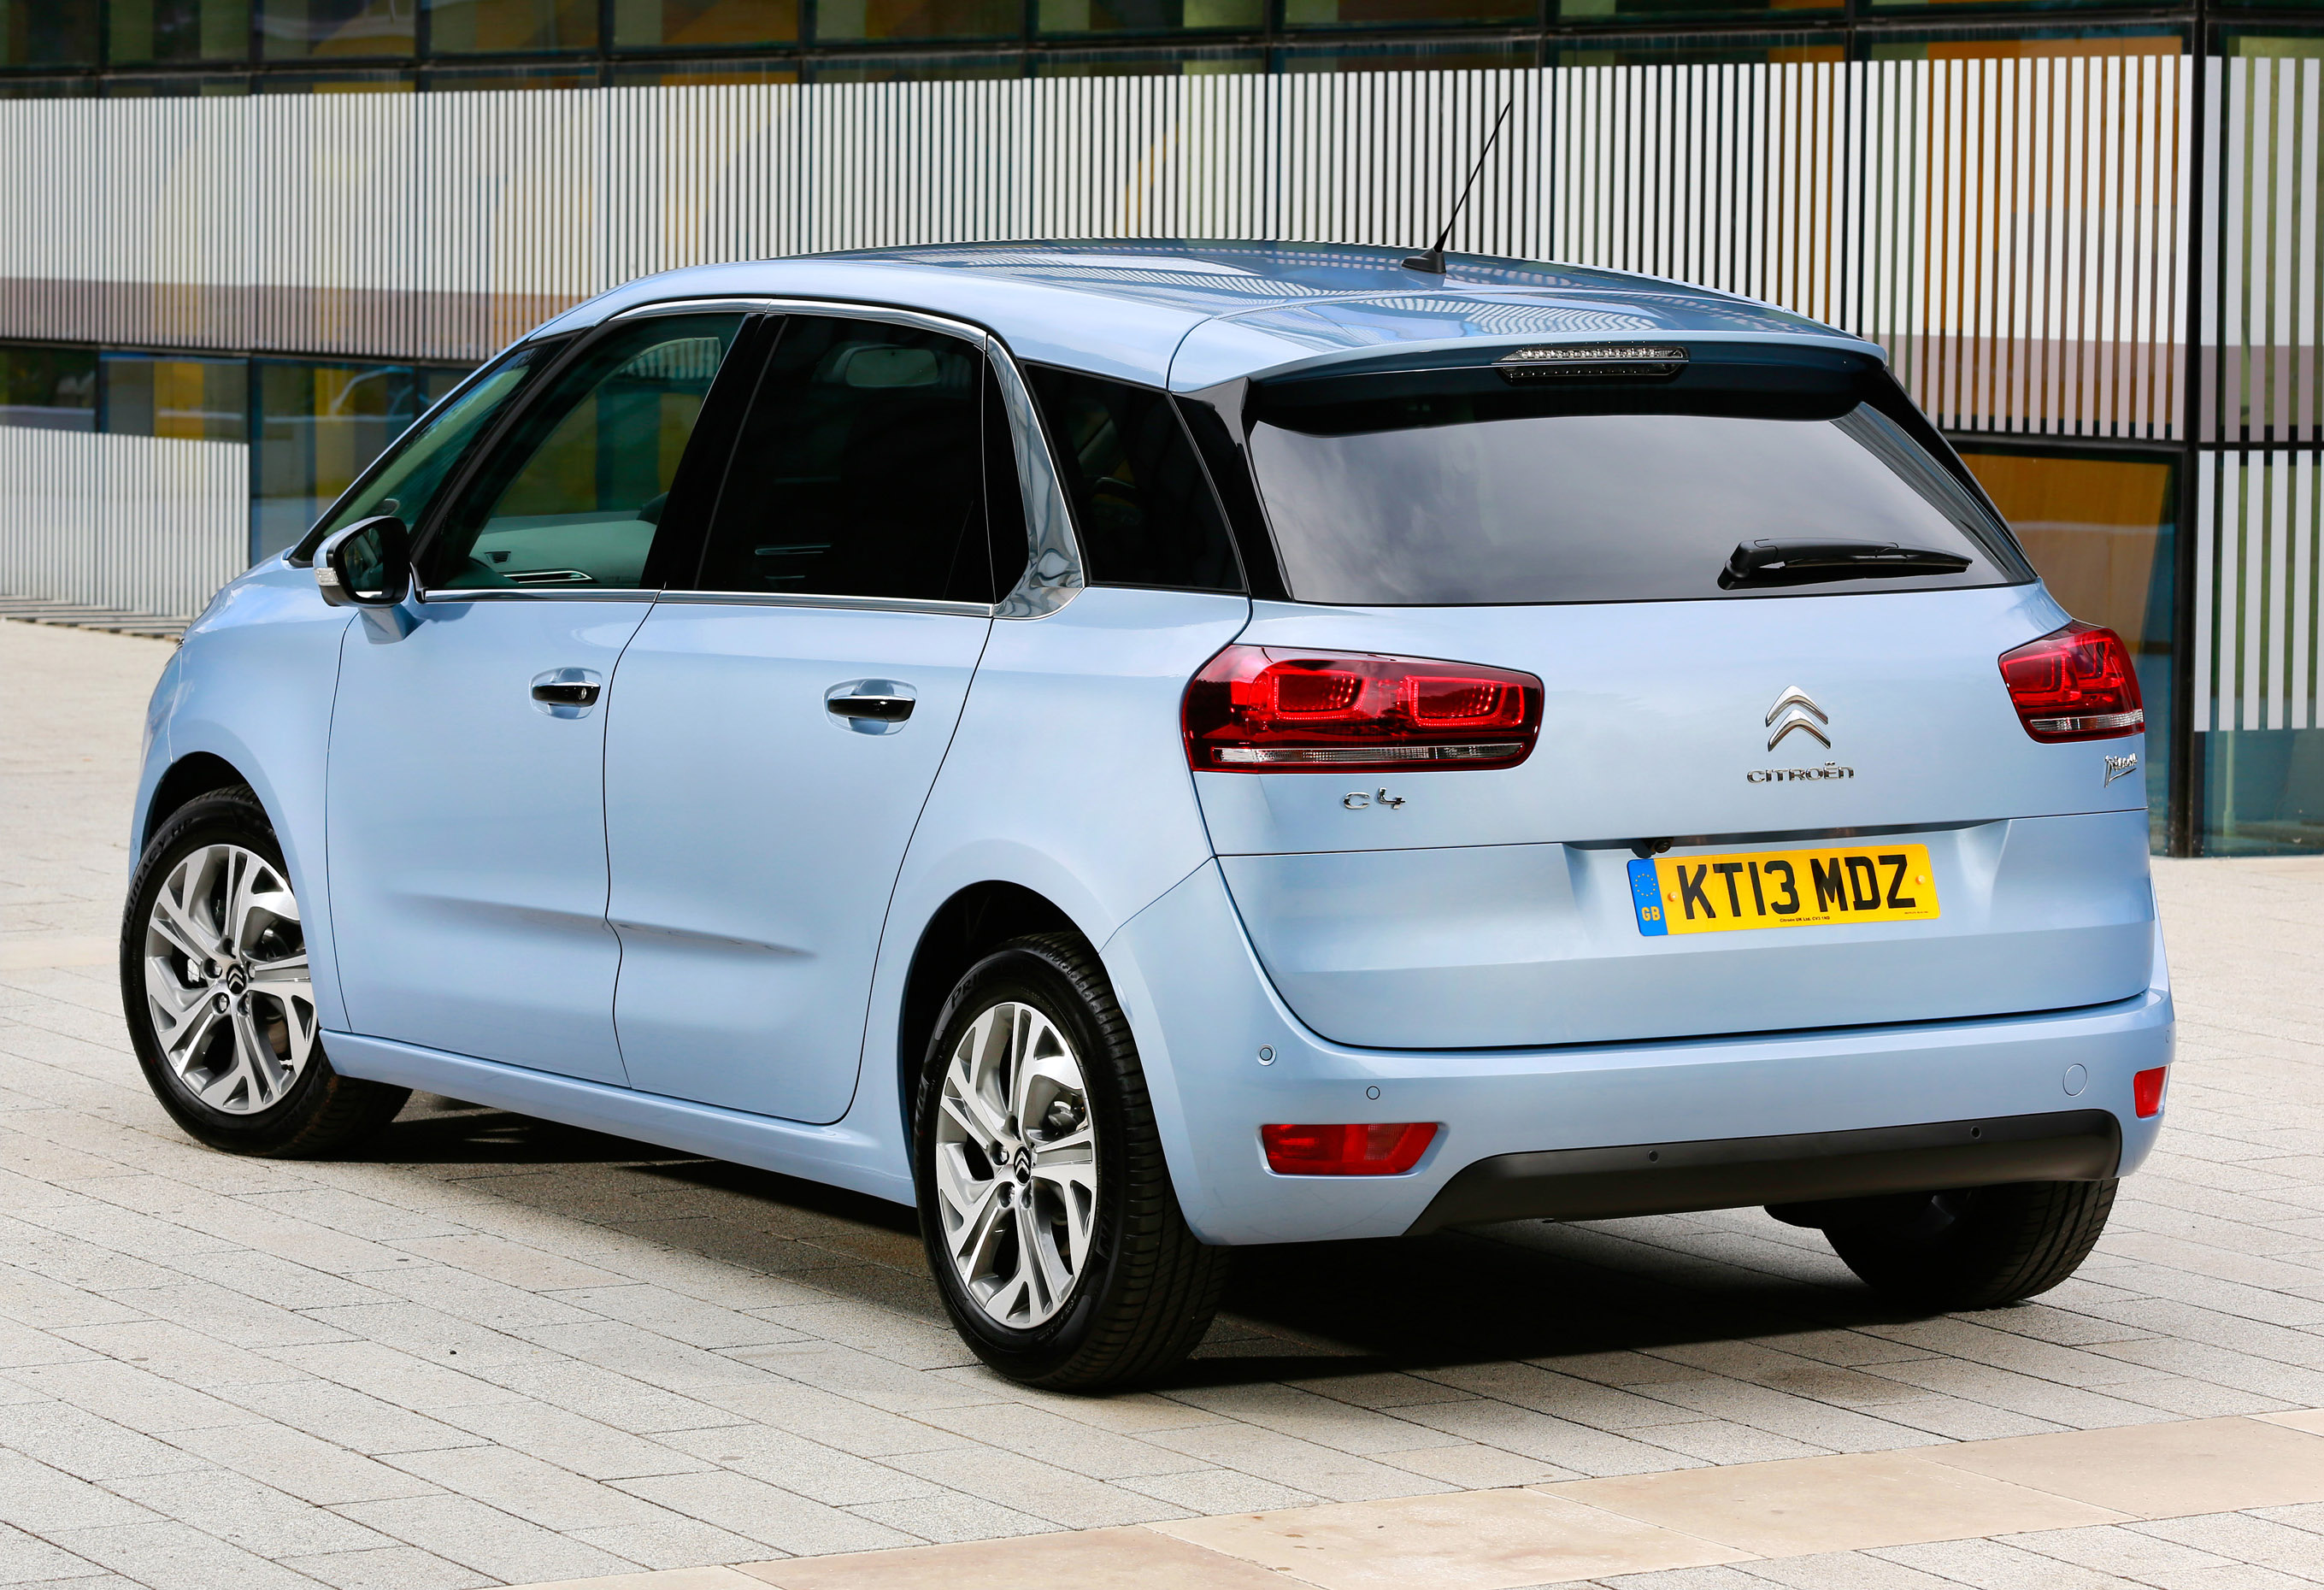 2014 citroen c4 picasso an innovative mpv. Black Bedroom Furniture Sets. Home Design Ideas